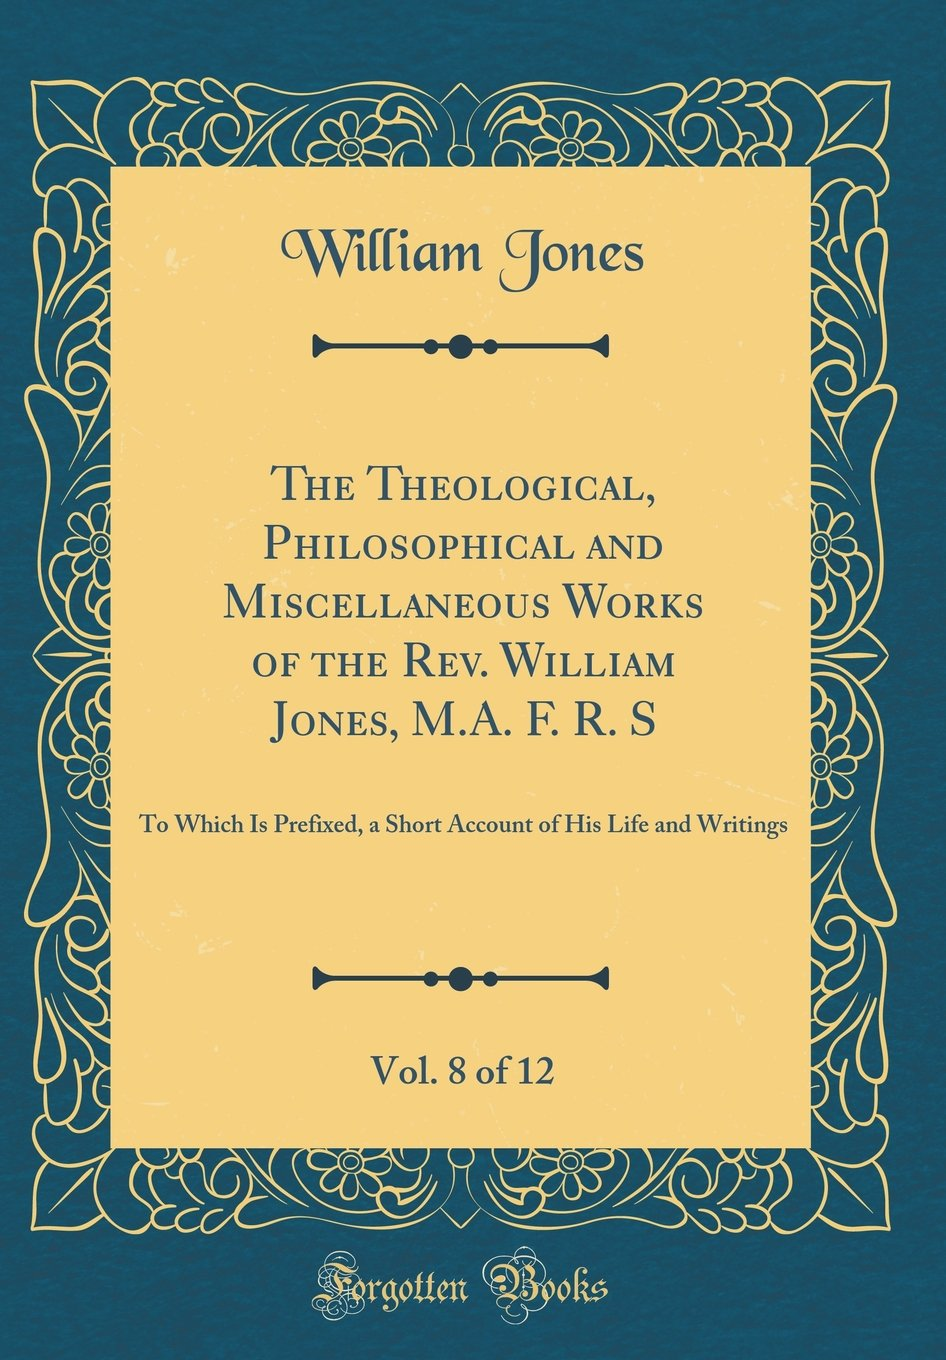 Download The Theological, Philosophical and Miscellaneous Works of the Rev. William Jones, M.A. F. R. S, Vol. 8 of 12: To Which Is Prefixed, a Short Account of His Life and Writings (Classic Reprint) pdf epub